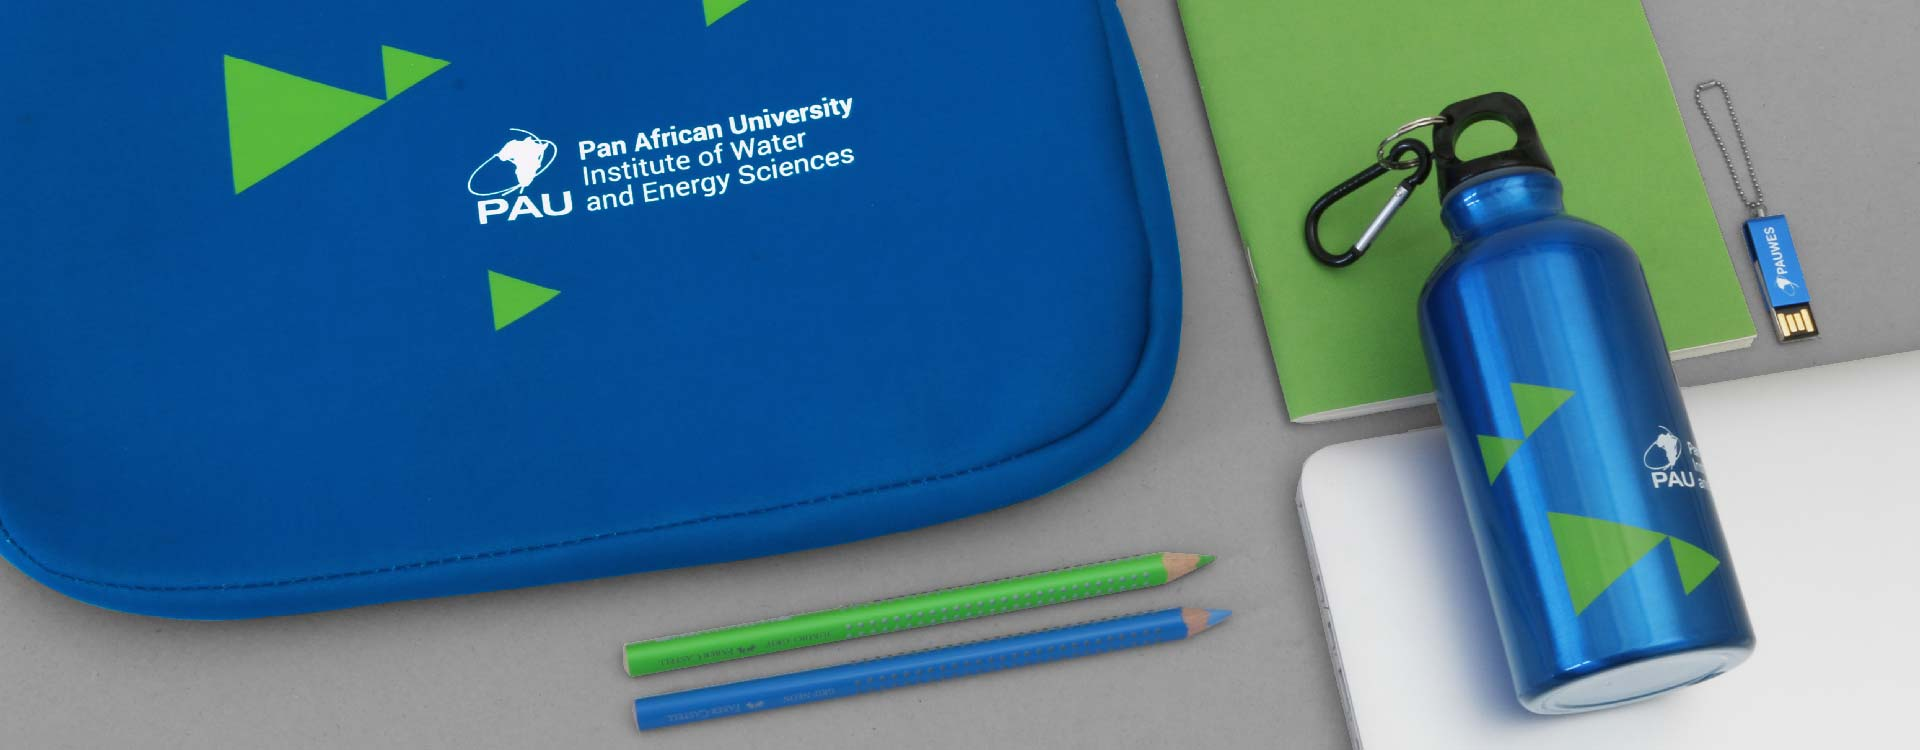 Promotional items of the Pan African University, Institute of Water and Energy Sciences PAUWES; Design: Kattrin Richter | Graphic Design Studio